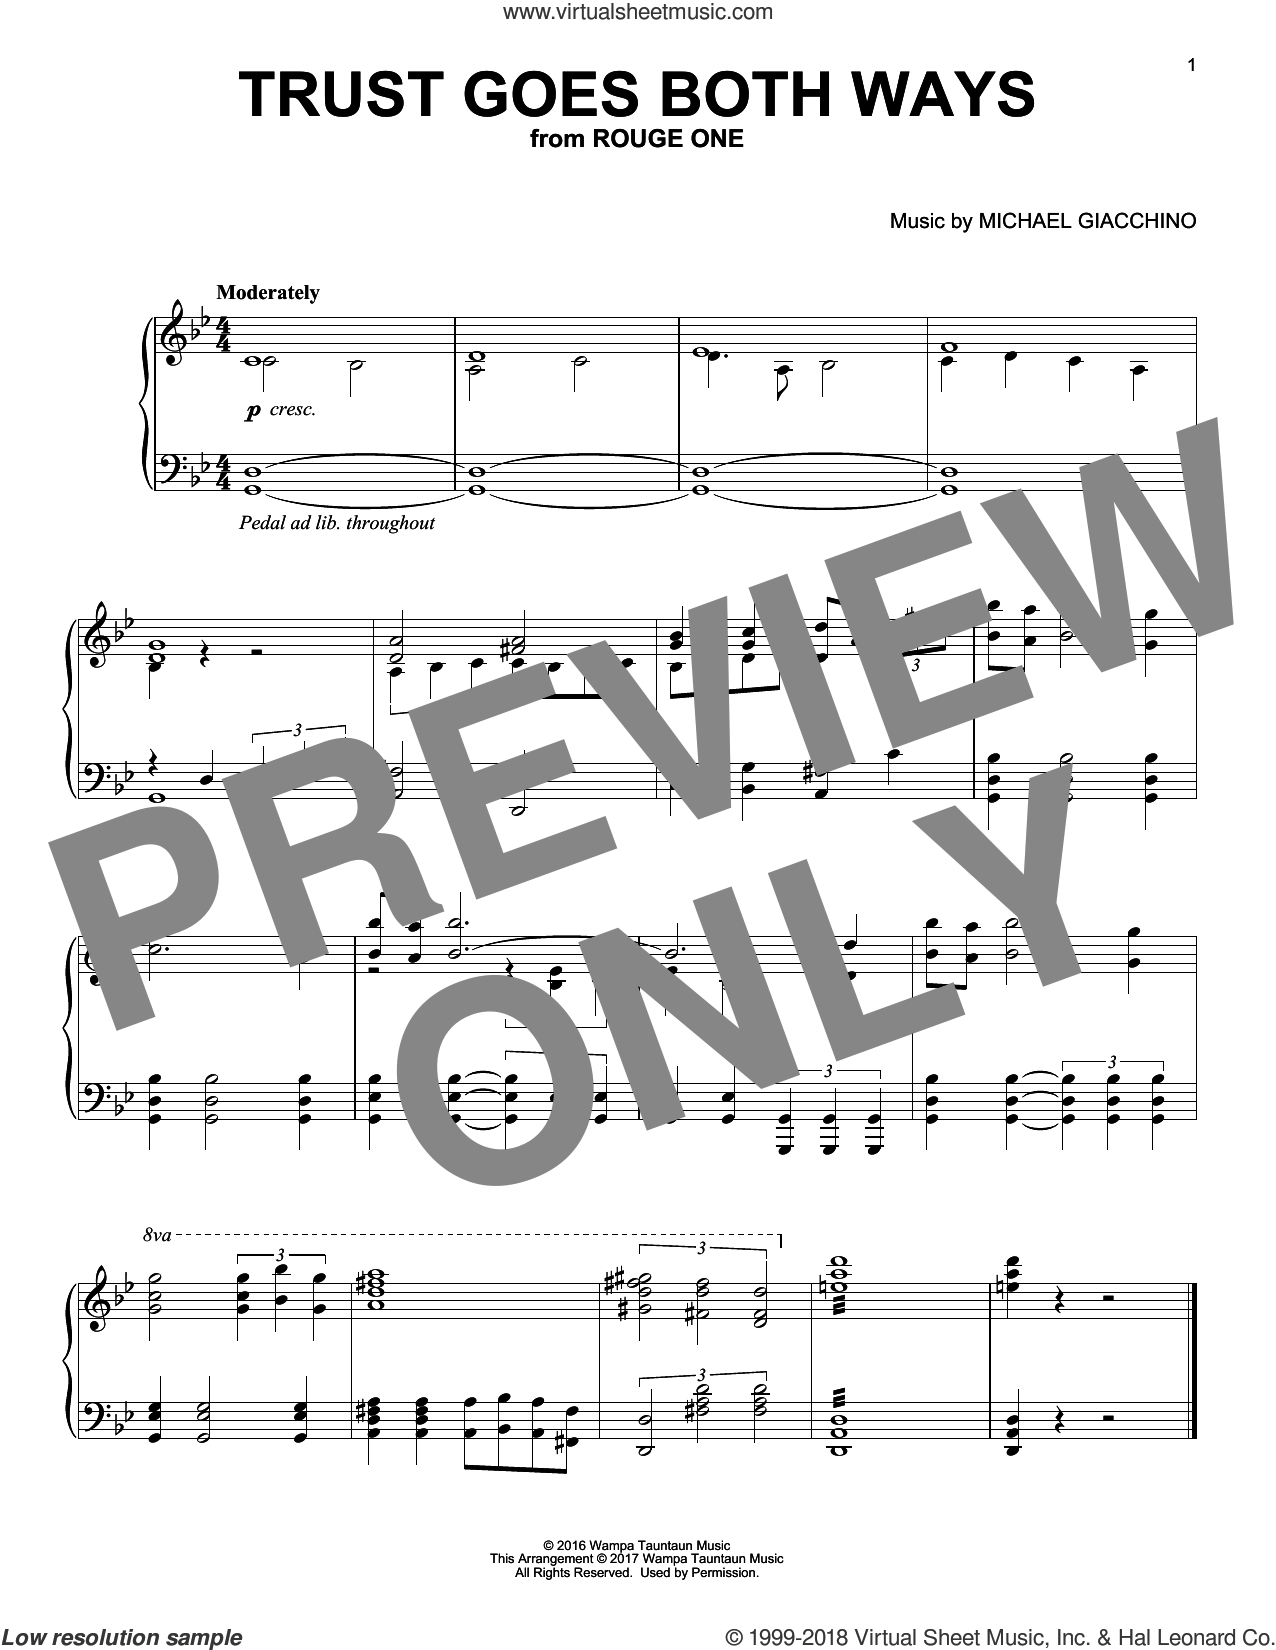 Trust Goes Both Ways sheet music for piano solo by Michael Giacchino, classical score, intermediate skill level